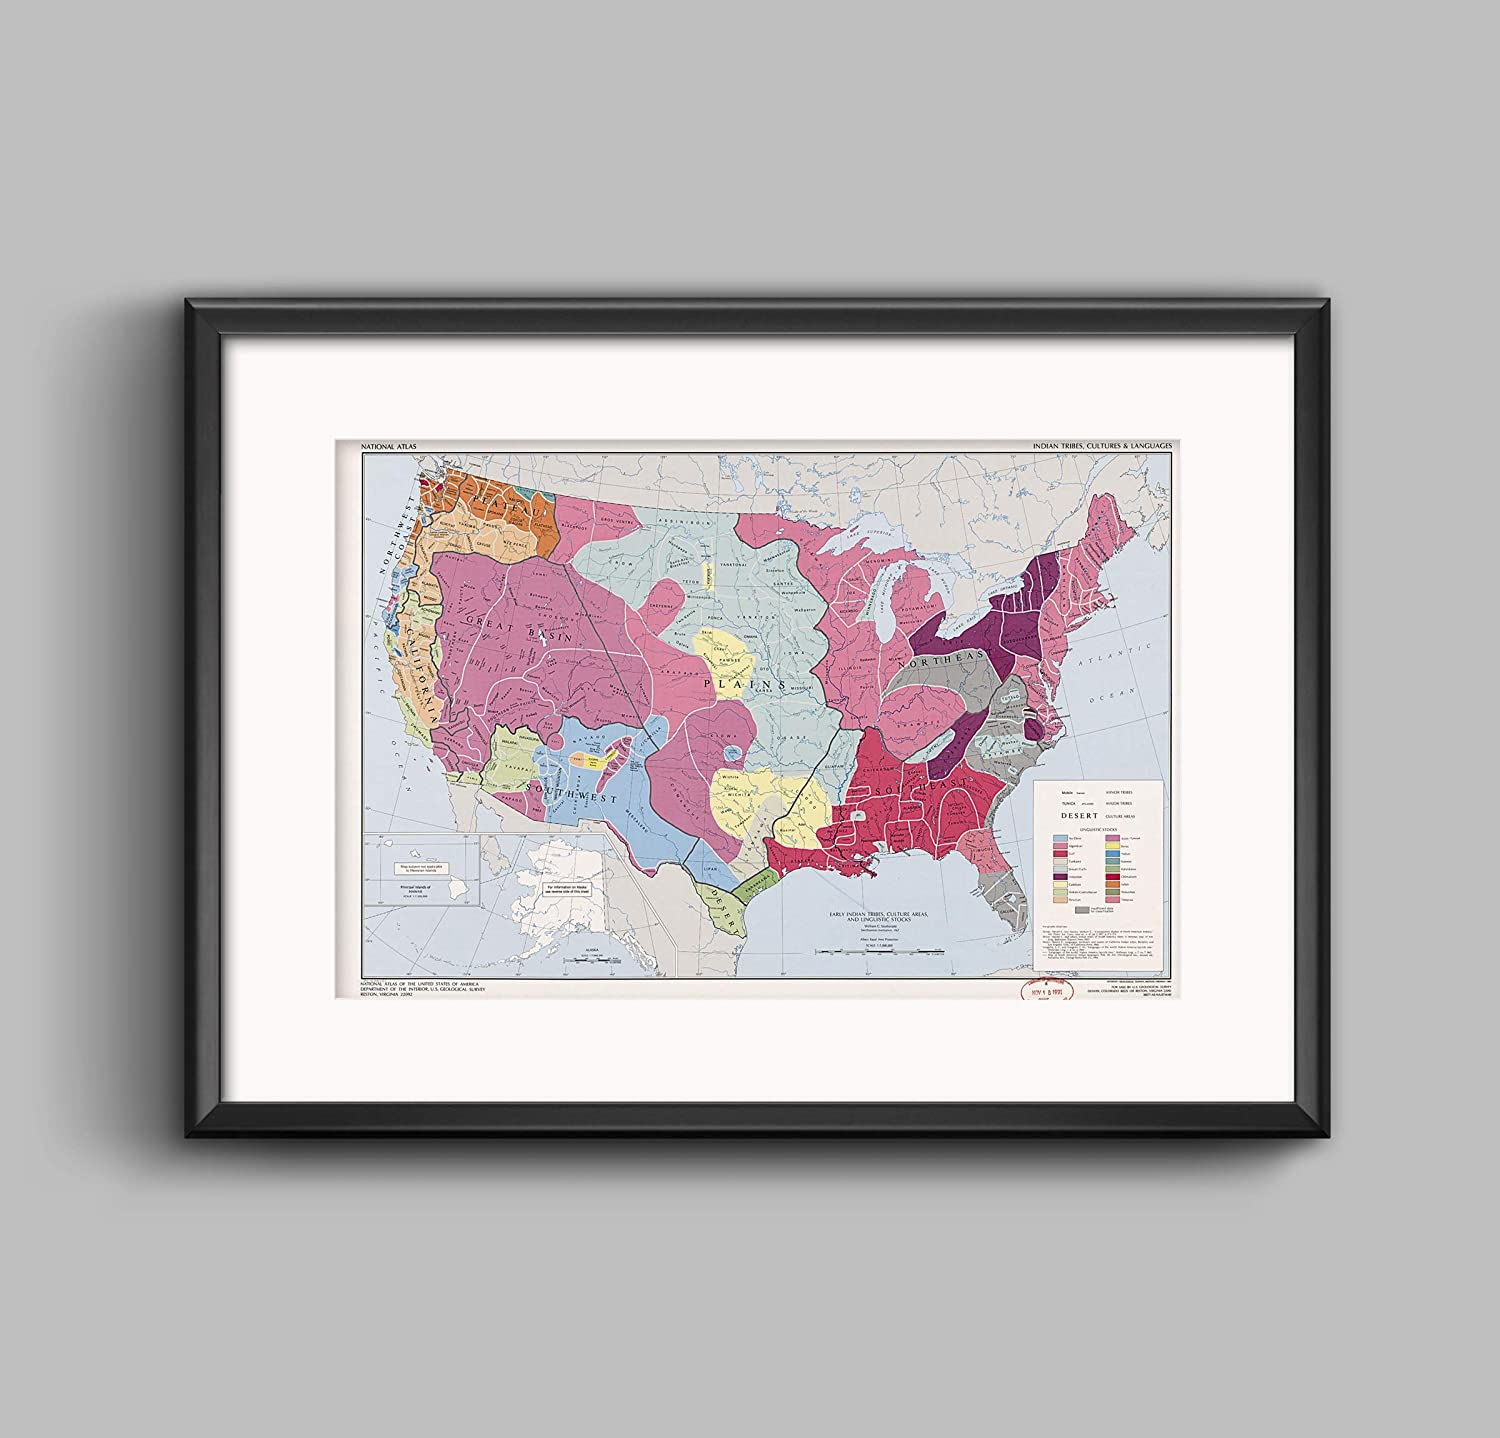 Amazon com: Riley Creative Solutions 🔴 US Map of Indian